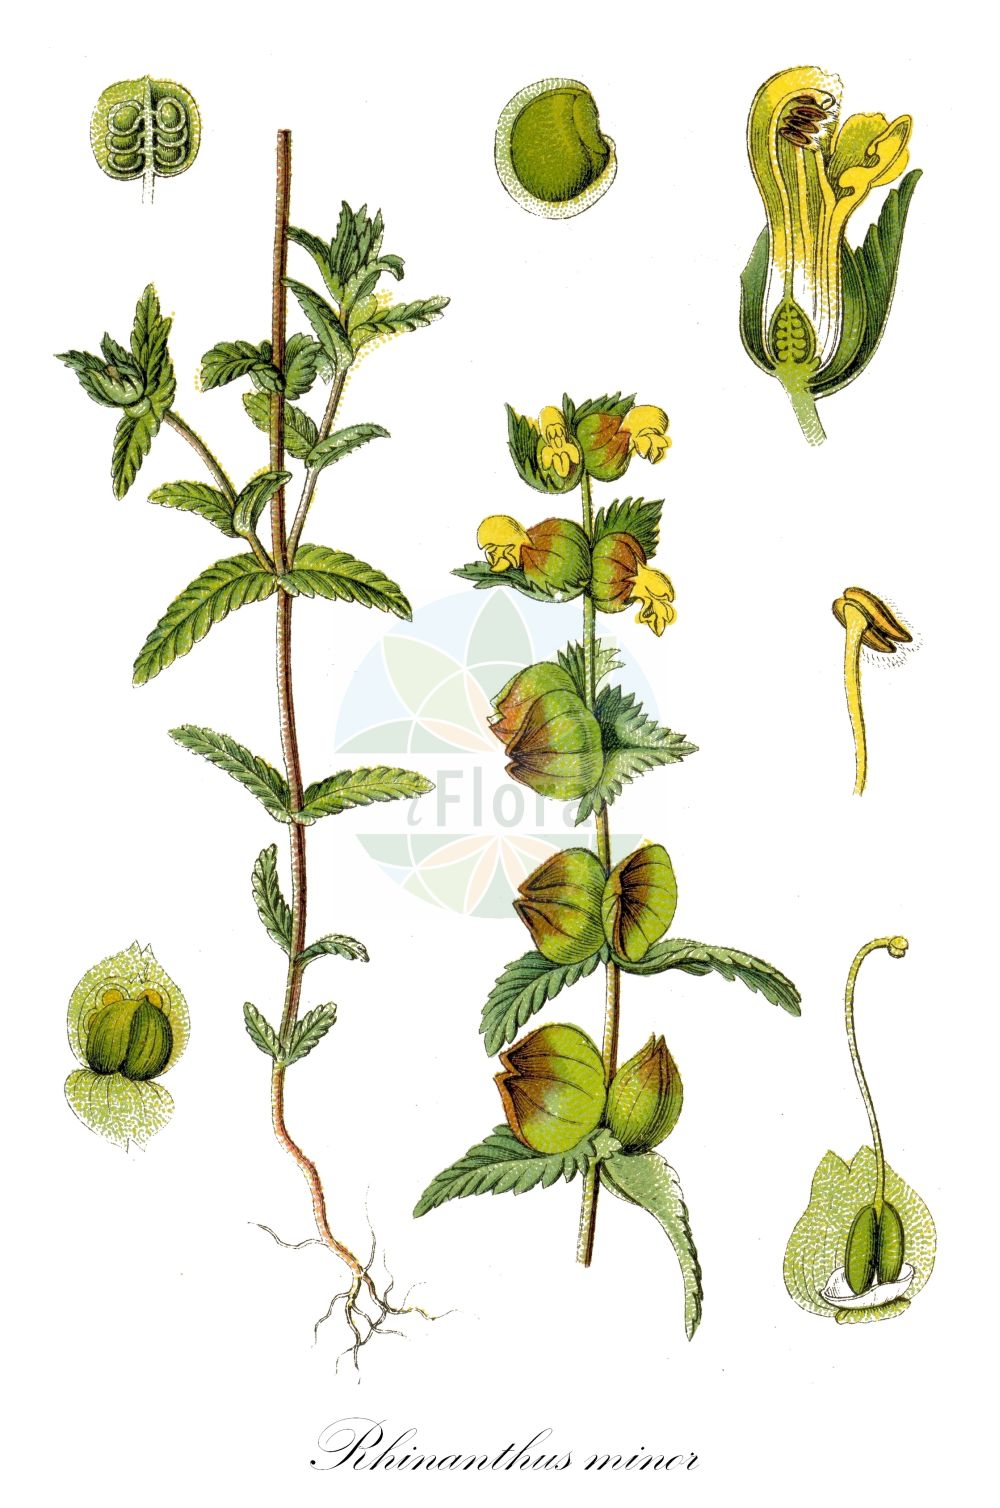 Historische Abbildung von Rhinanthus minor (Kleiner Klappertopf - Yellow-rattle). Das Bild zeigt Blatt, Bluete, Frucht und Same. ---- Historical Drawing of Rhinanthus minor (Kleiner Klappertopf - Yellow-rattle).The image is showing leaf, flower, fruit and seed.(Rhinanthus minor,Kleiner Klappertopf,Yellow-rattle,Alectorolophus borealis,Alectorolophus crista-galli,Alectorolophus drummond-hayi,Alectorolophus minor,Alectorolophus monticola,Alectorolophus parviflorus,Alectorolophus rusticulus,Alectorolophus stenophyllus,Rhinanthus balticus,Rhinanthus borealis,Rhinanthus crista-galli L. var.,Rhinanthus hercynicus,L. subsp.,L. var.,Rhinanthus nigricans,Rhinanthus rusticulus,Rhinanthus stenophyllus,Cockscomb Rattleweed,Little Yellow Rattle,Lesser Yellow Rattle,Rhinanthus,Klappertopf,Yellow Rattle,Orobanchaceae,Sommerwurzgewaechse,Broomrape family,Blatt,Bluete,Frucht,Same,leaf,flower,fruit,seed,Sturm (1796f))